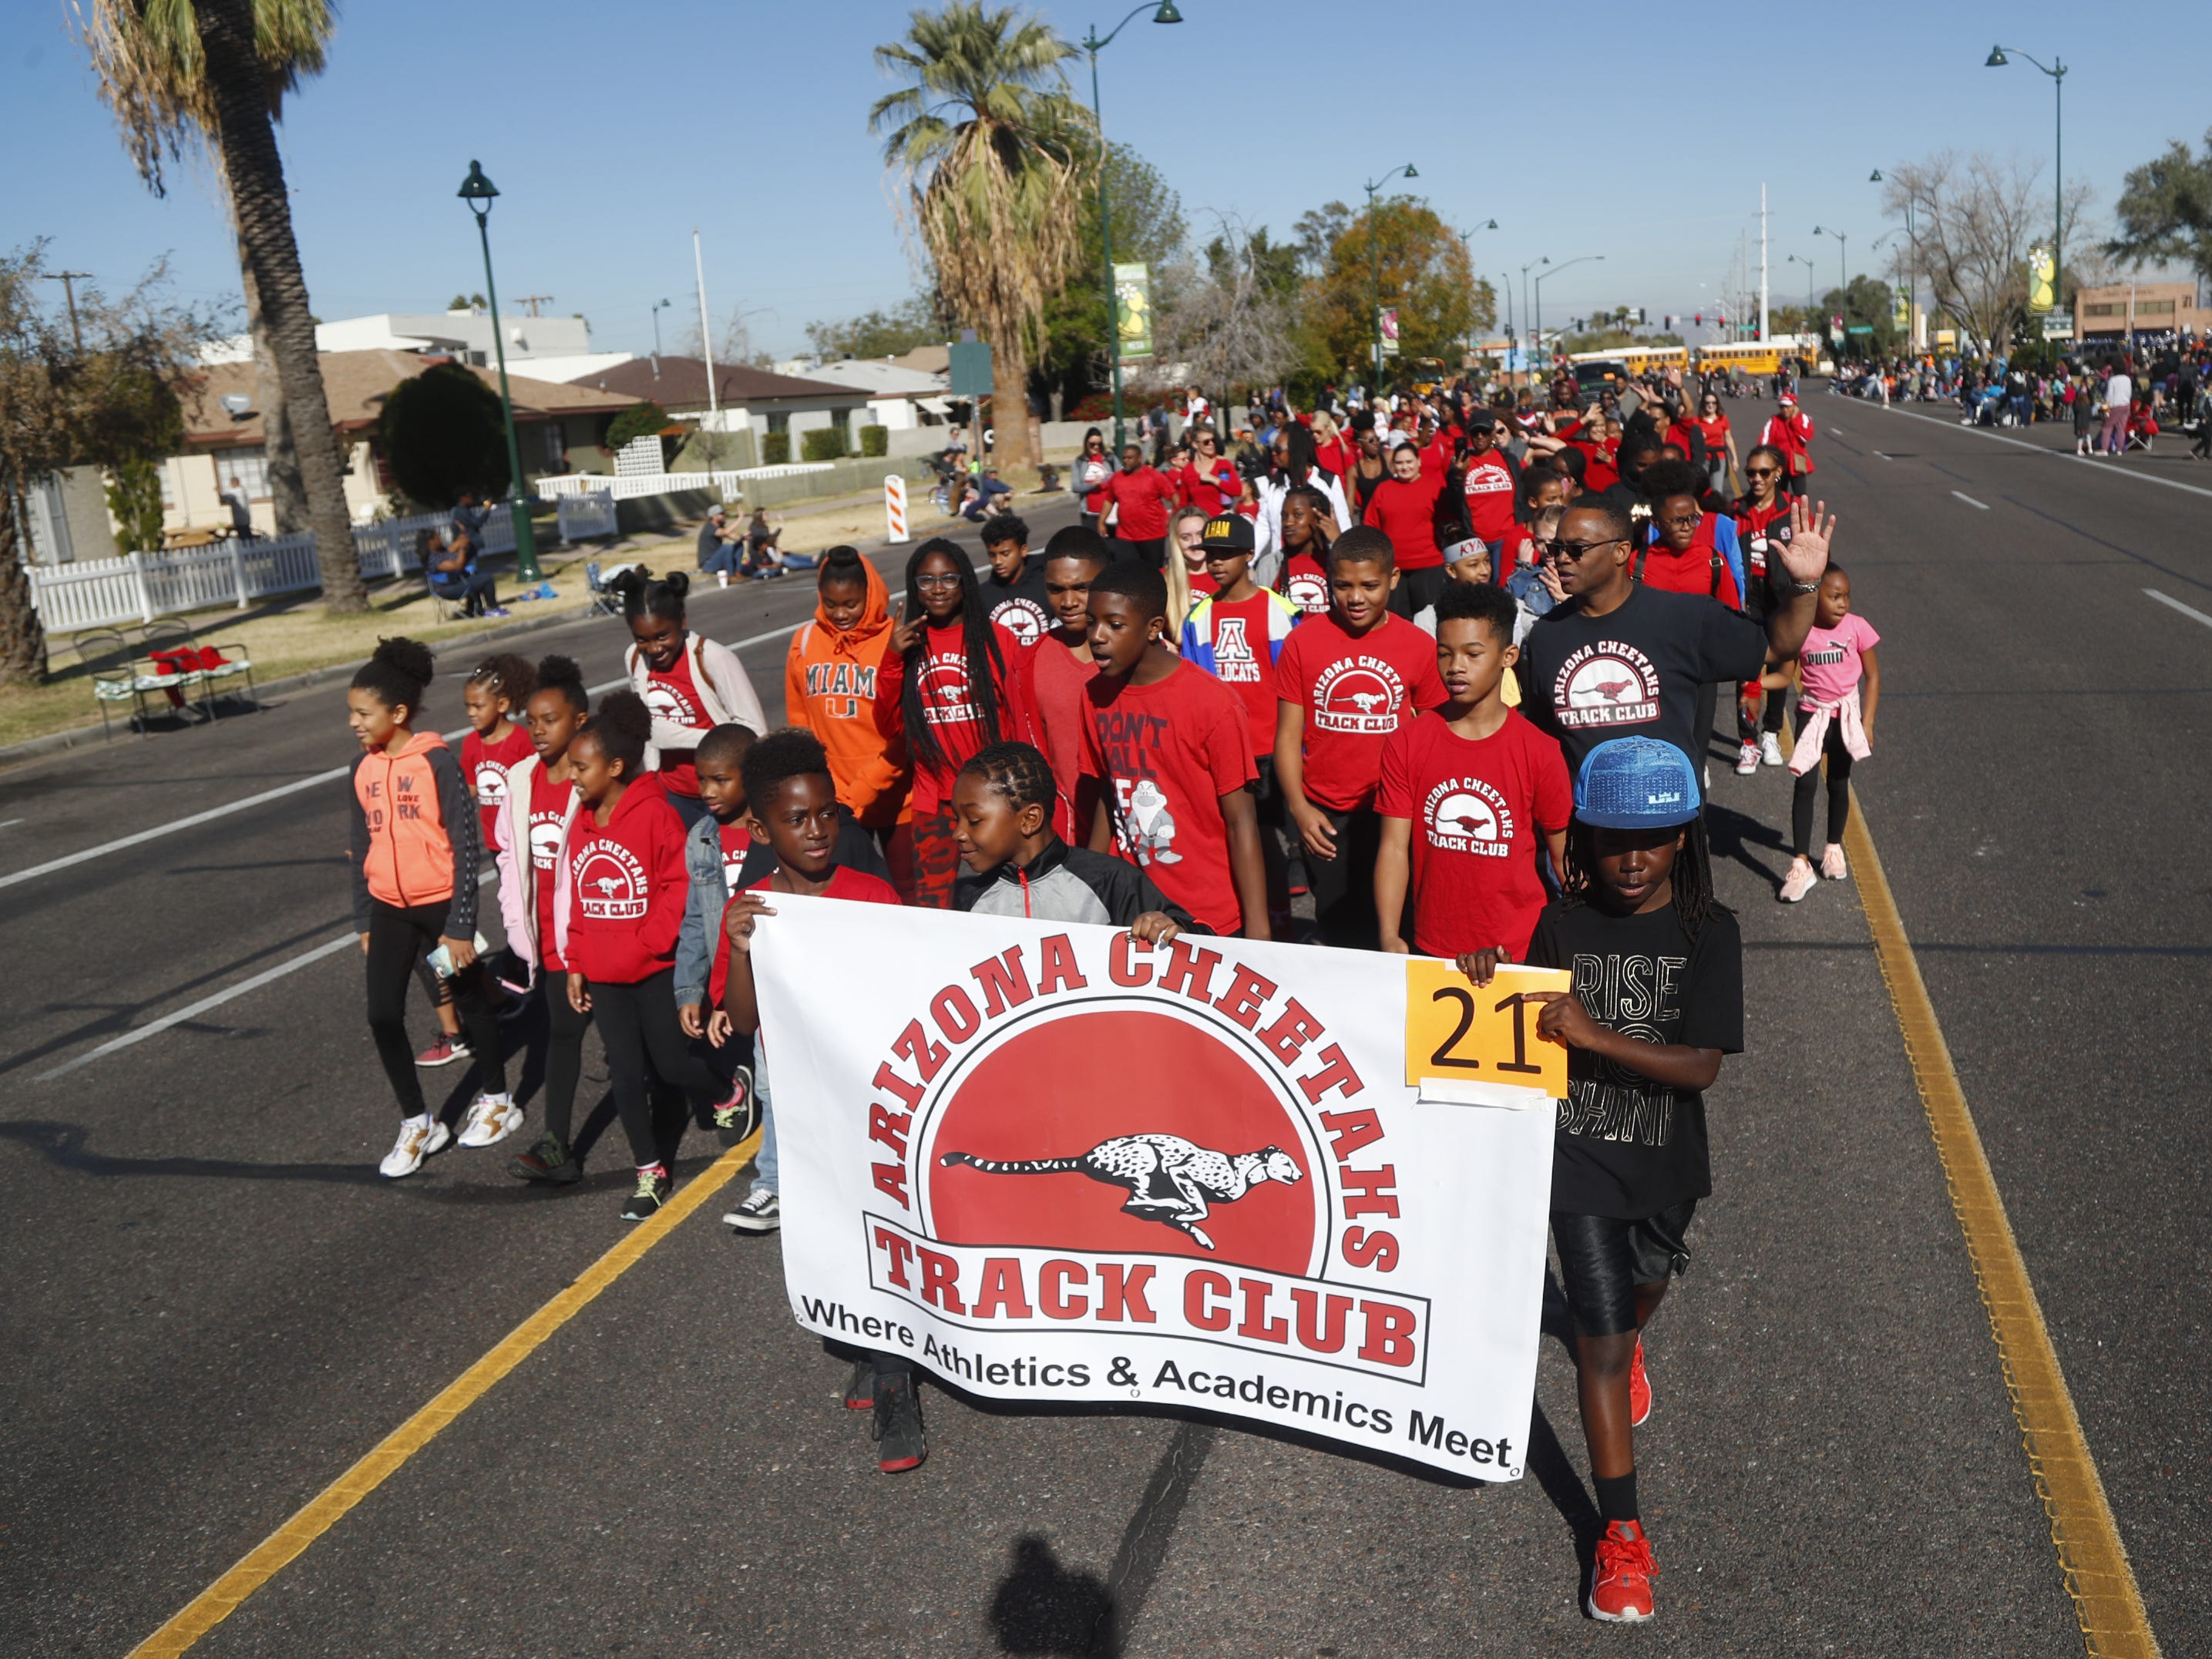 Arizona Cheetas Track Club carries its banner during the MLK Day Parade in Mesa, Ariz. on January 21, 2019.